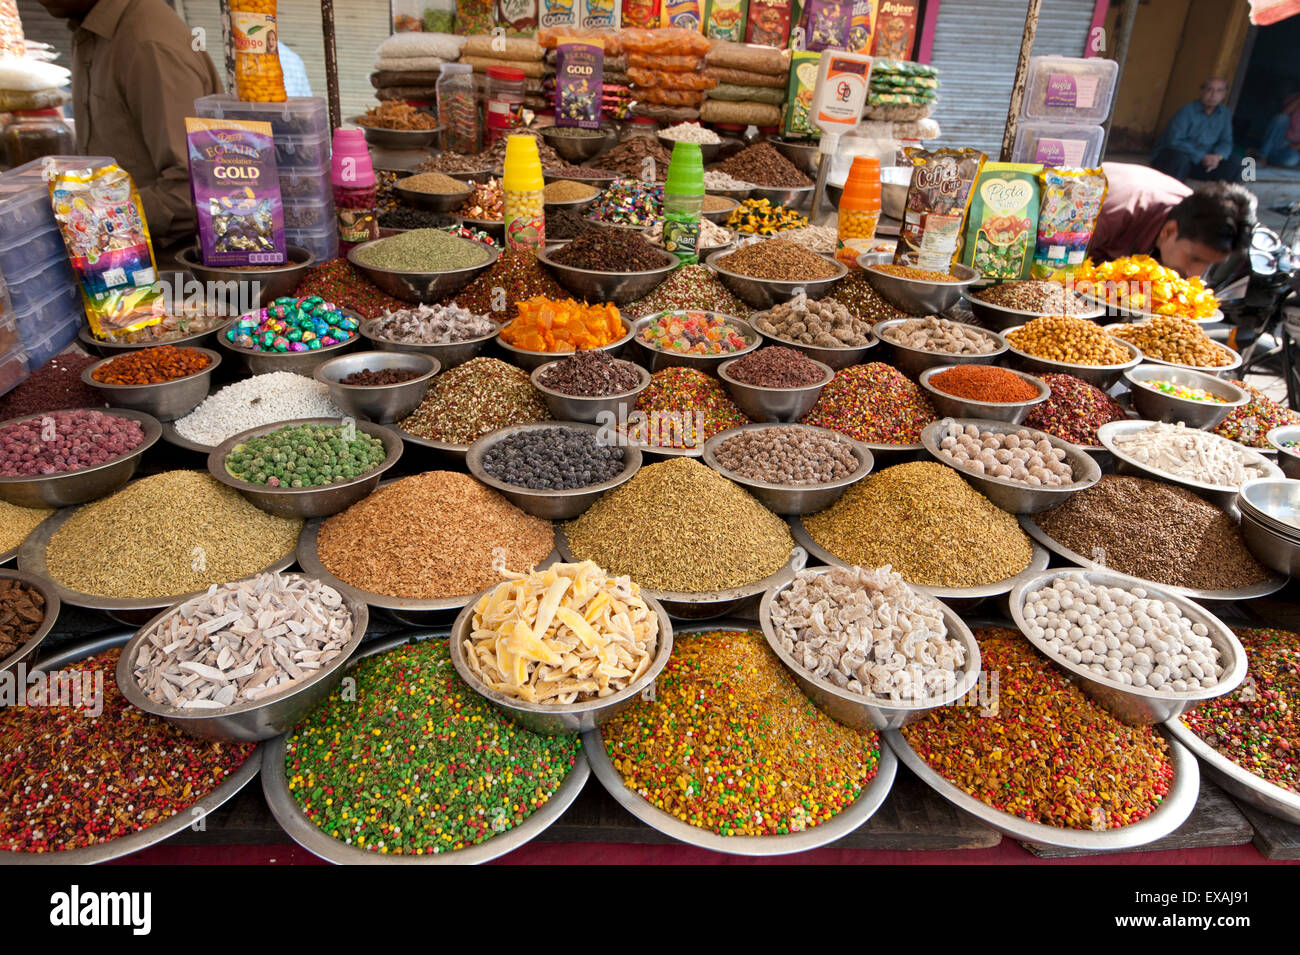 Spice and sweet stall in the market, Ahmedabad, Gujarat, India, Asia - Stock Image